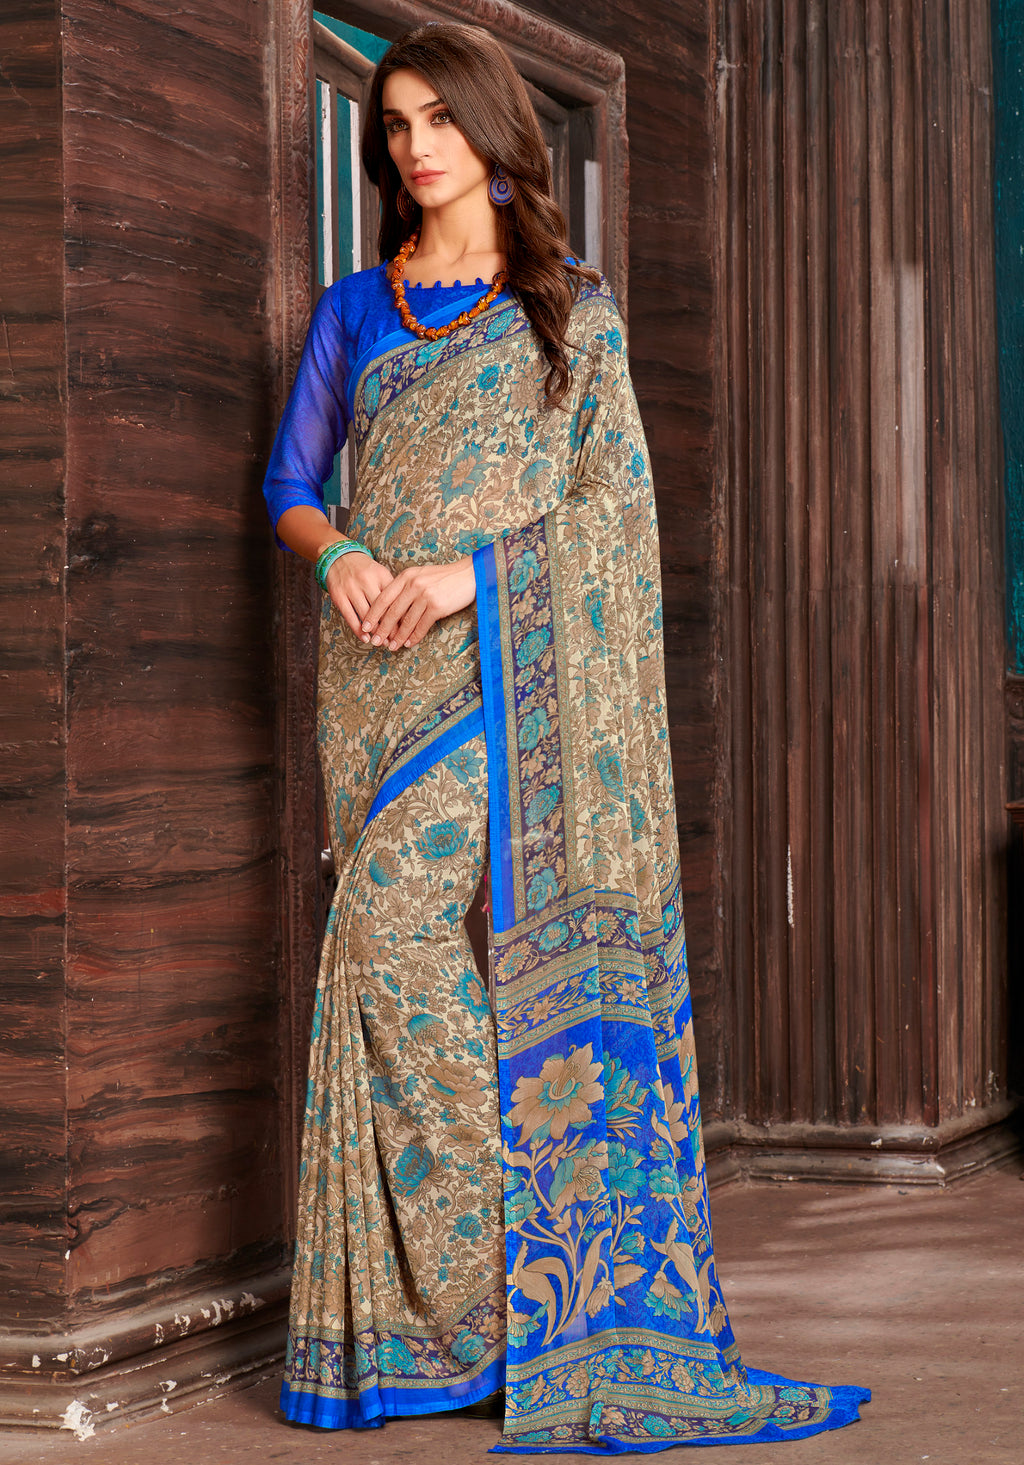 Beige & Blue Color Chiffon Home Wear Sarees NYF-8762